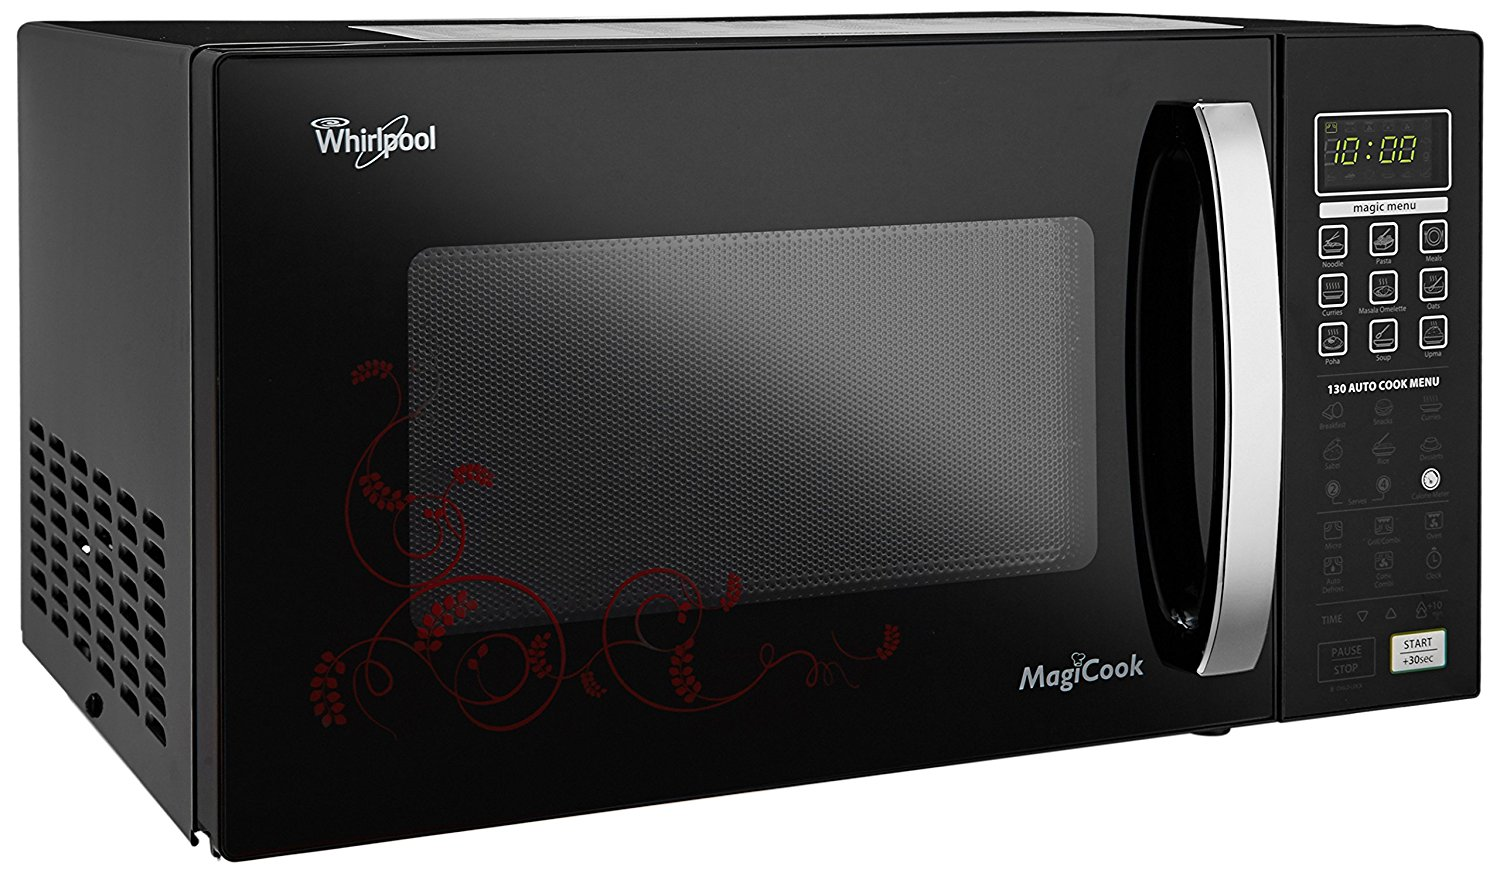 Whirlpool 23 liters microwave oven